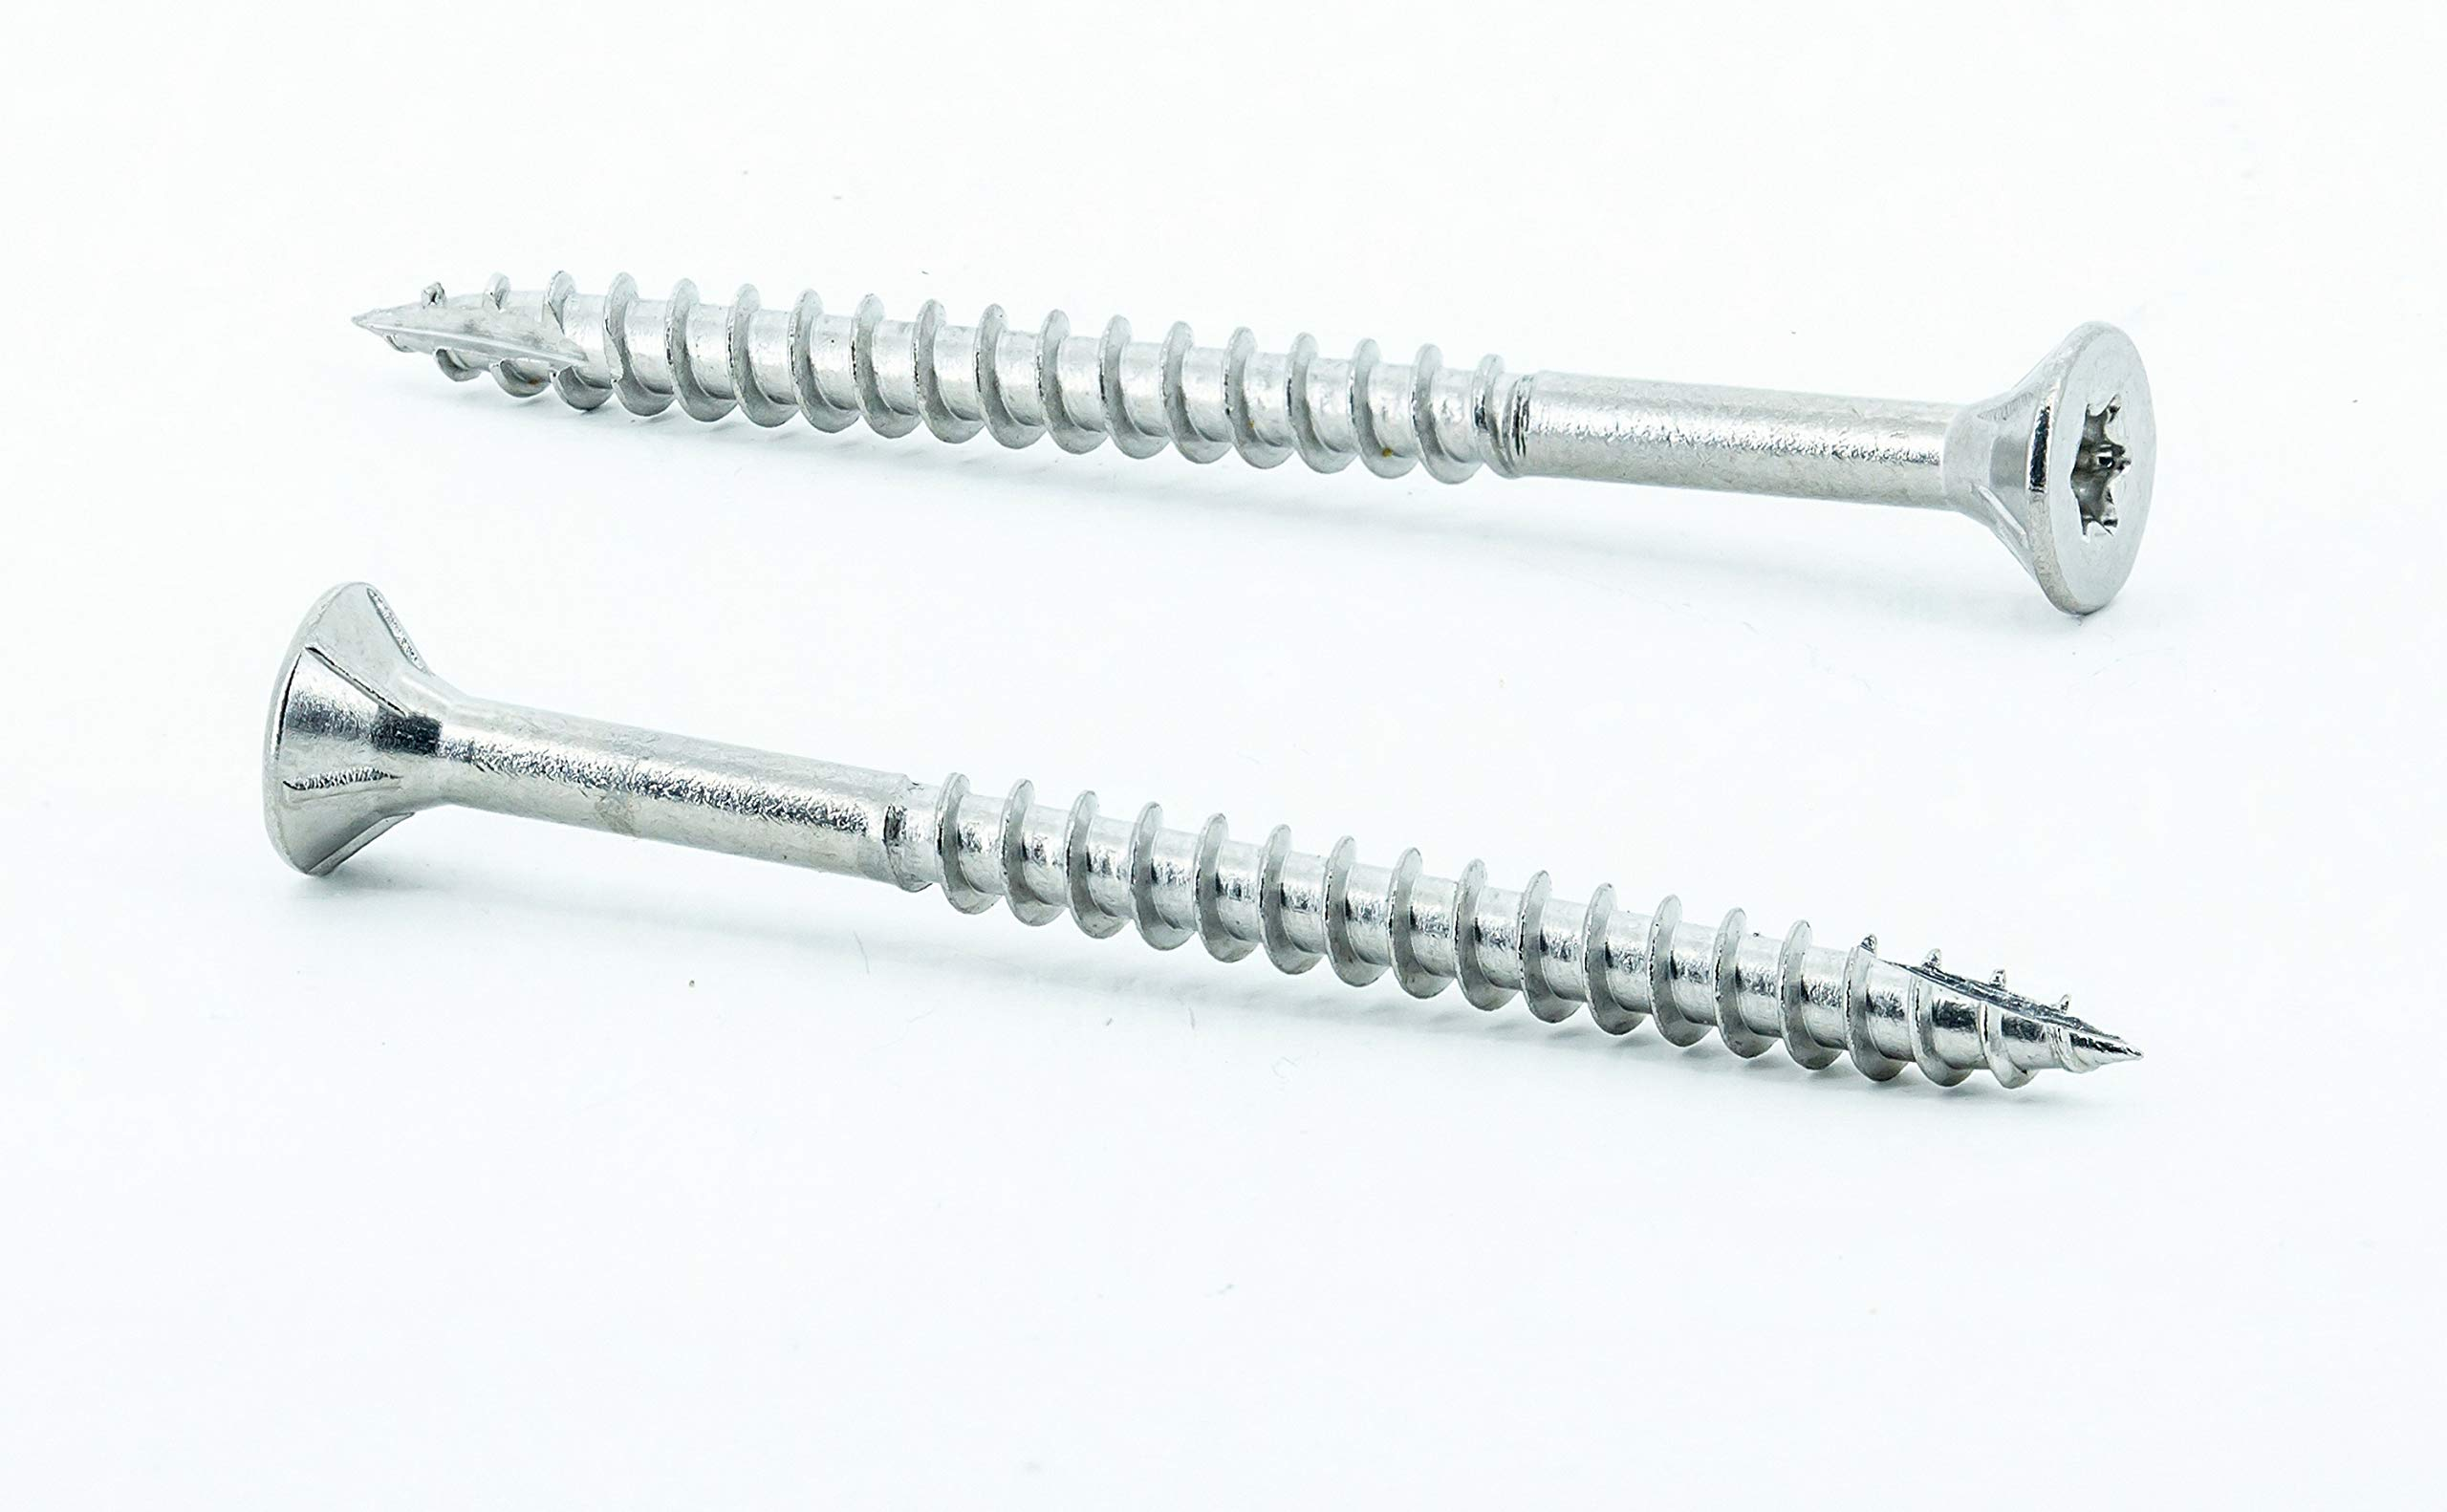 #10 x 2-1/2'' Stainless Steel Deck Screws, (1750 Pack, 21.2 lb) Star Drive T25, Type 17 Wood Cutting Point, 18-8 (304) Grade Stainless Steel, by Eagle Claw Tools and Fasteners